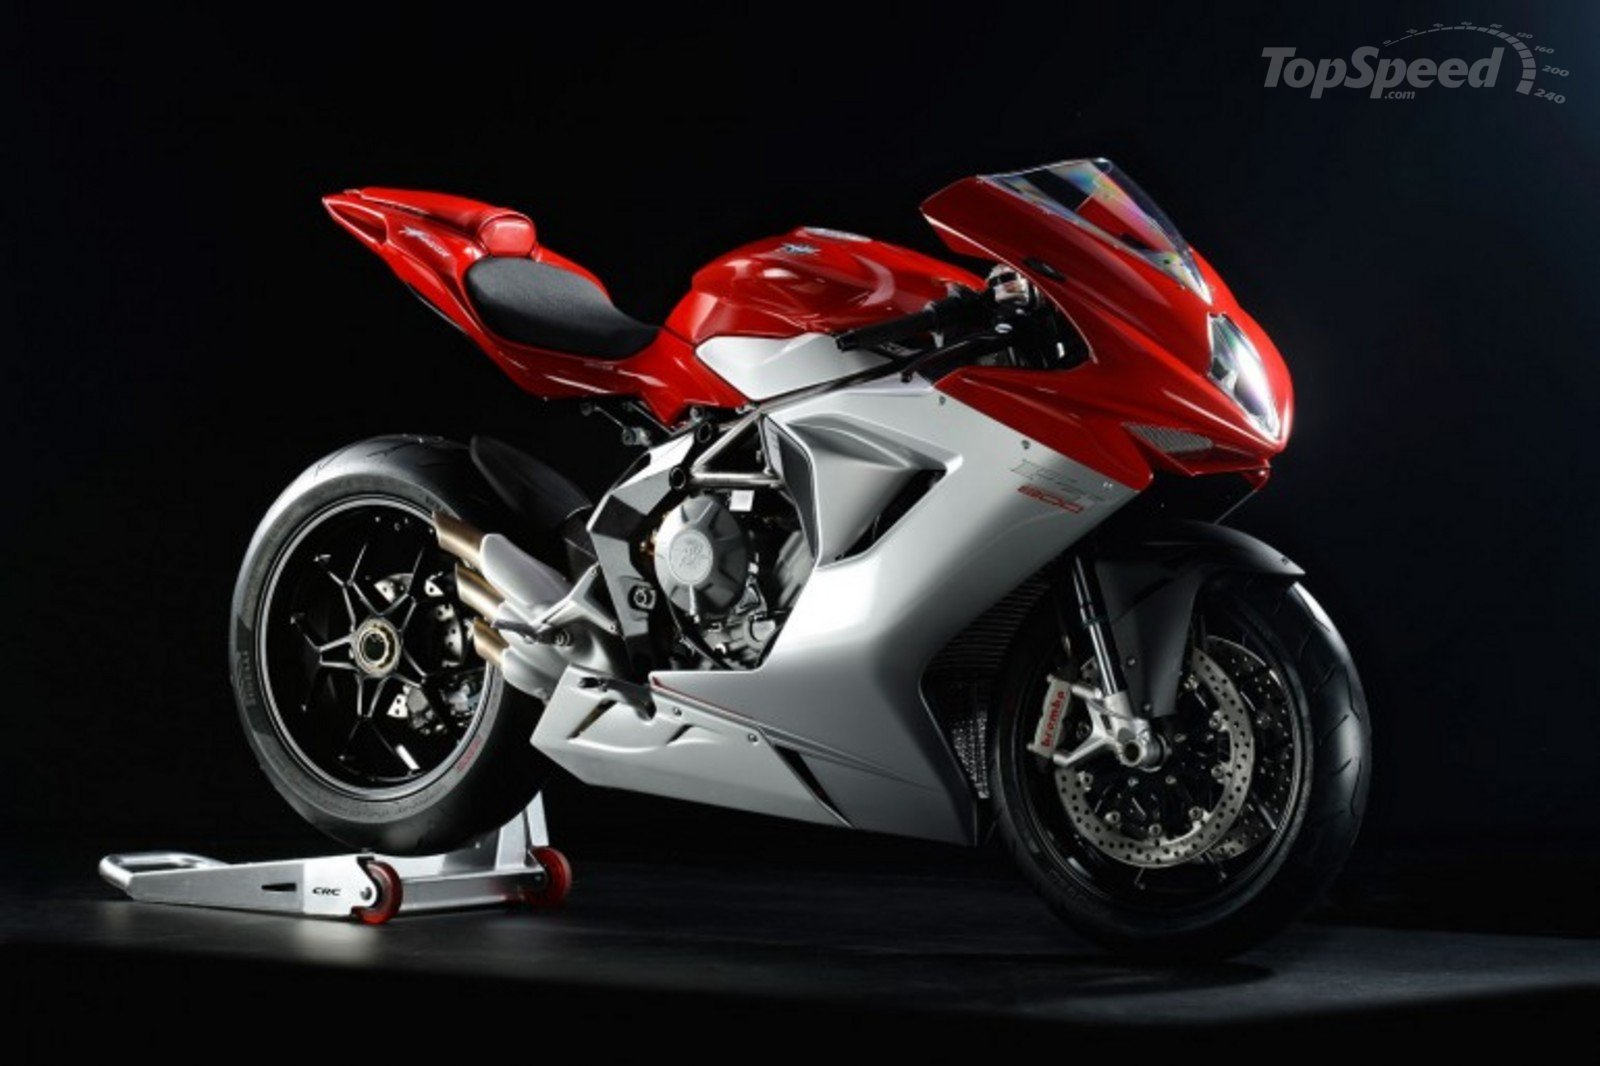 2013 mv agusta f3 800 review top speed. Black Bedroom Furniture Sets. Home Design Ideas